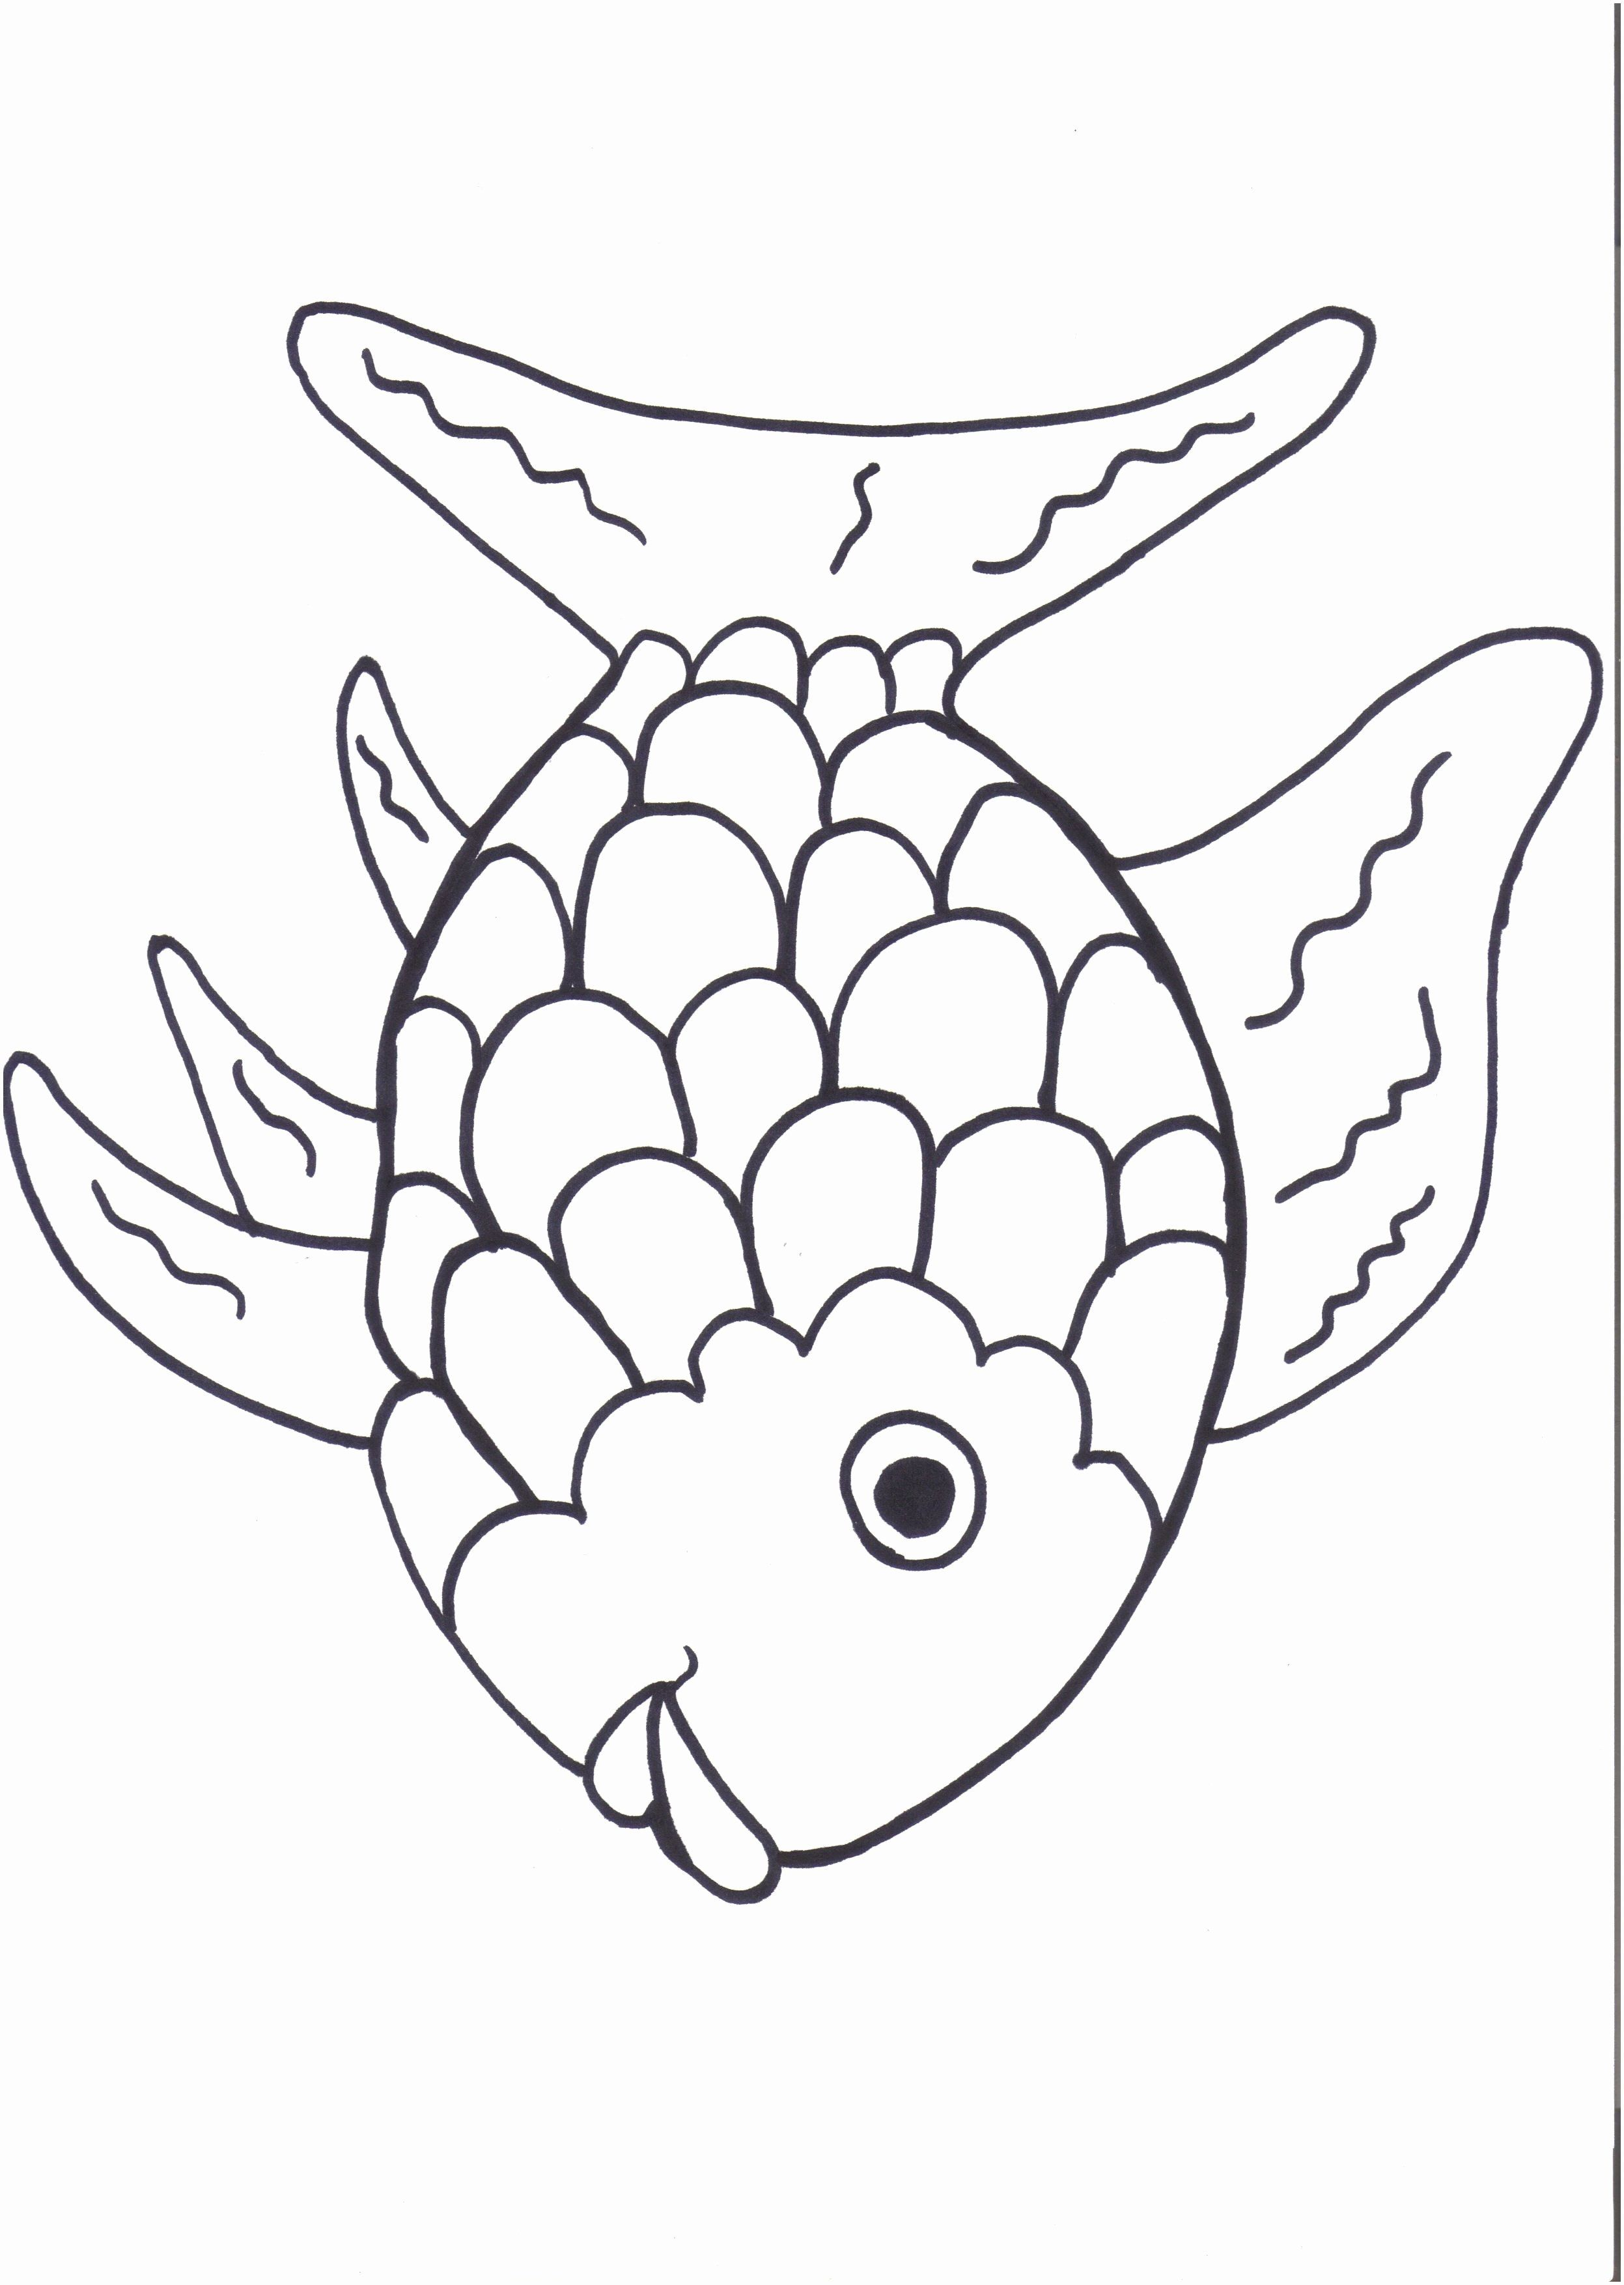 Coloring Pages For Kids Rainbow In